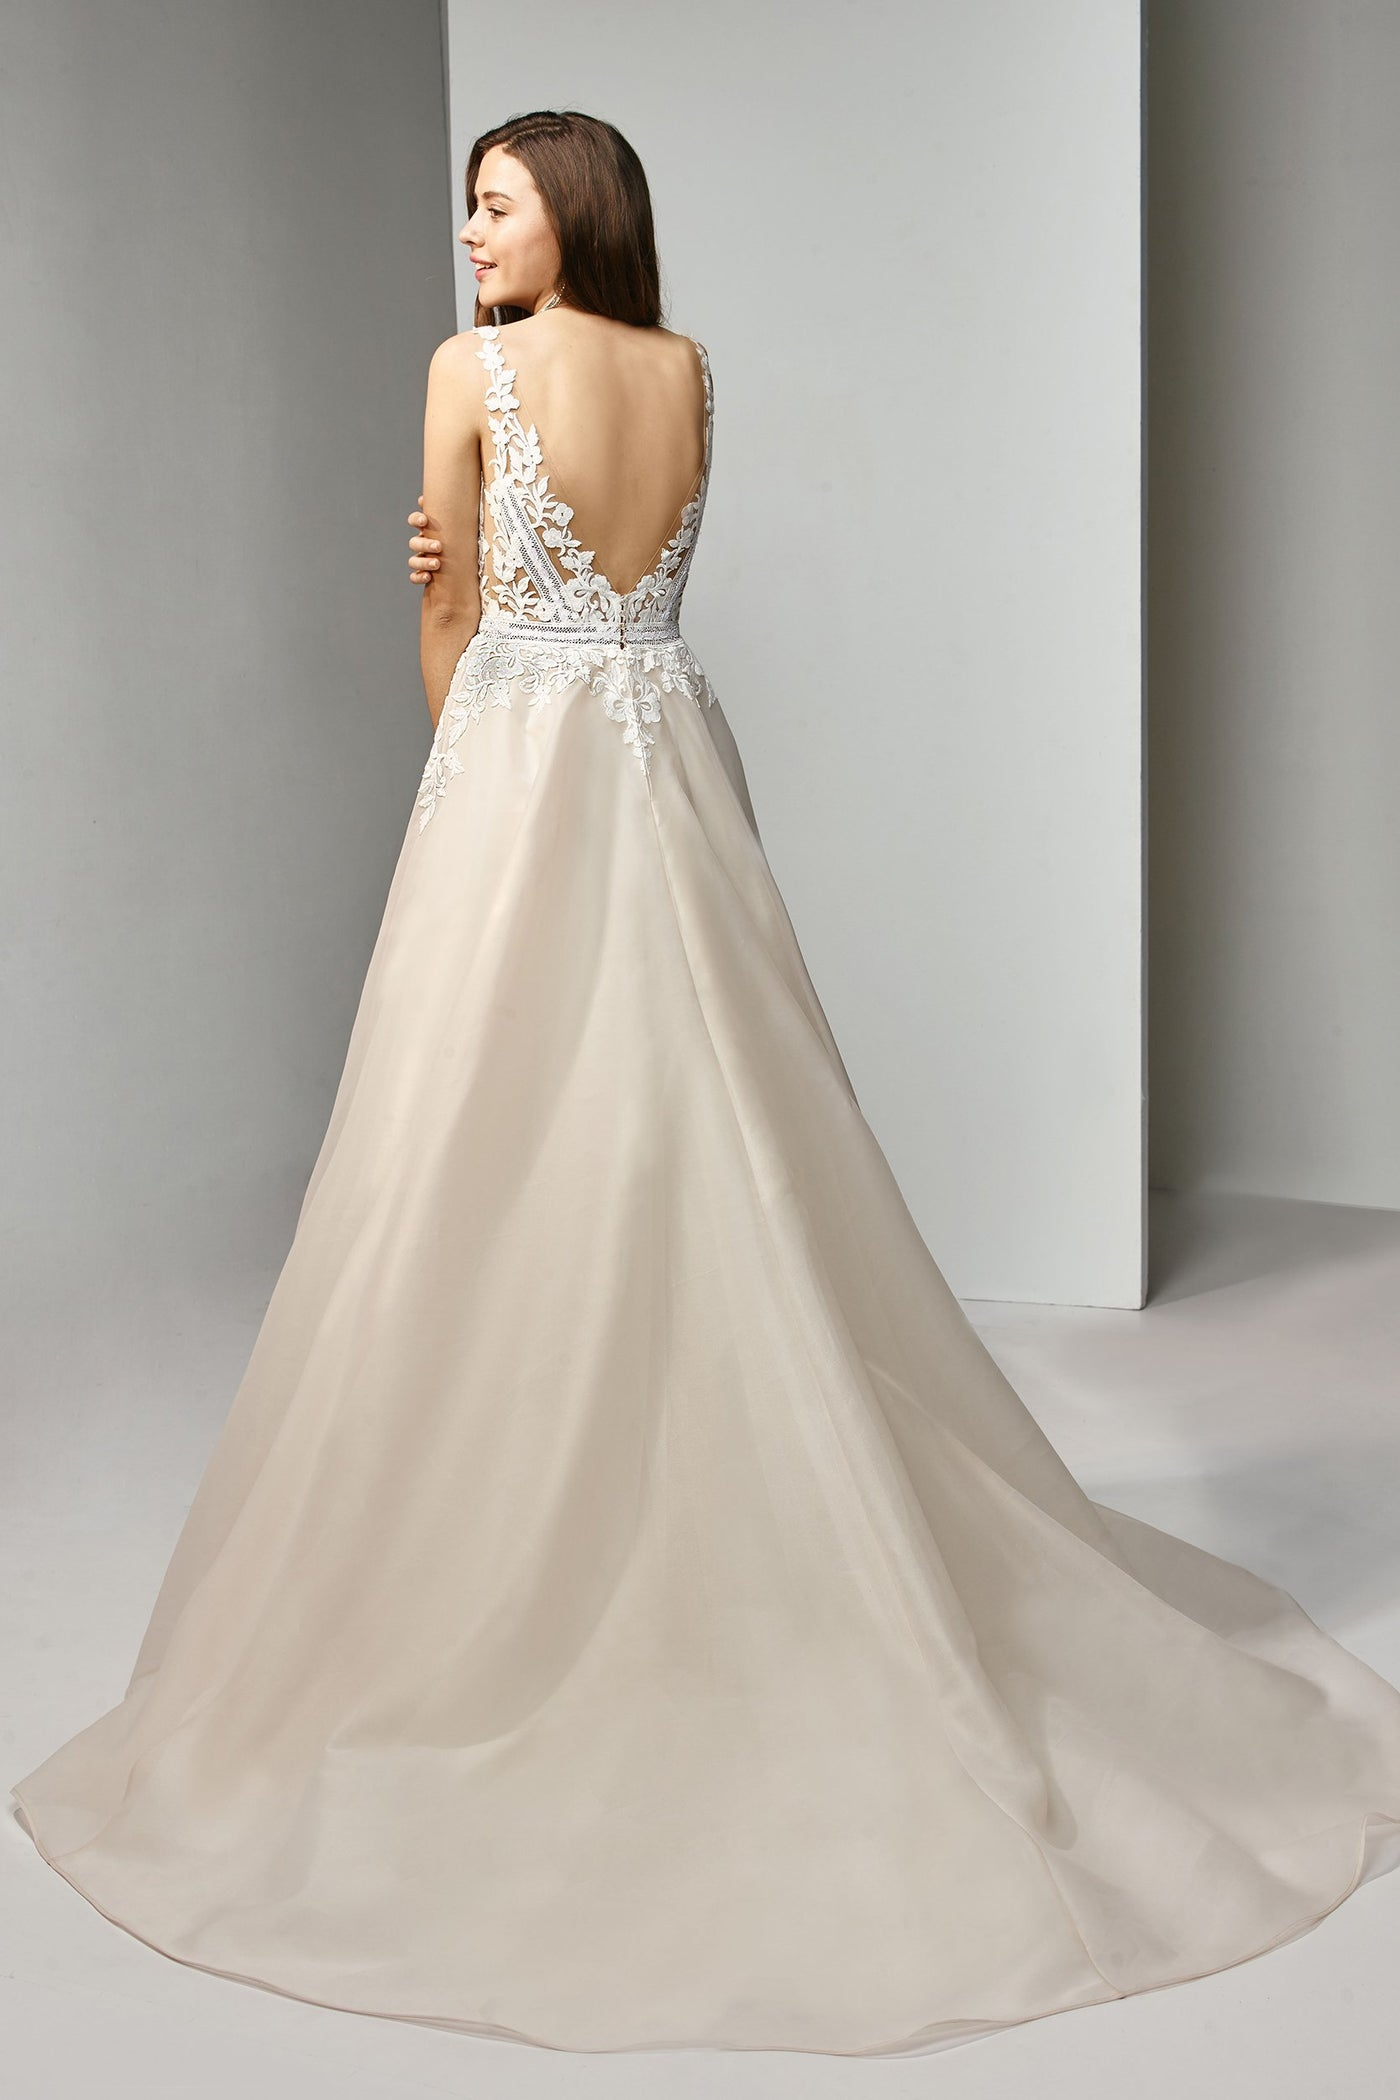 Willa - Sample Gown, Online Sample Sale - 1800, Beautiful by Enzoani - Sample Gown - Eternal Bridal